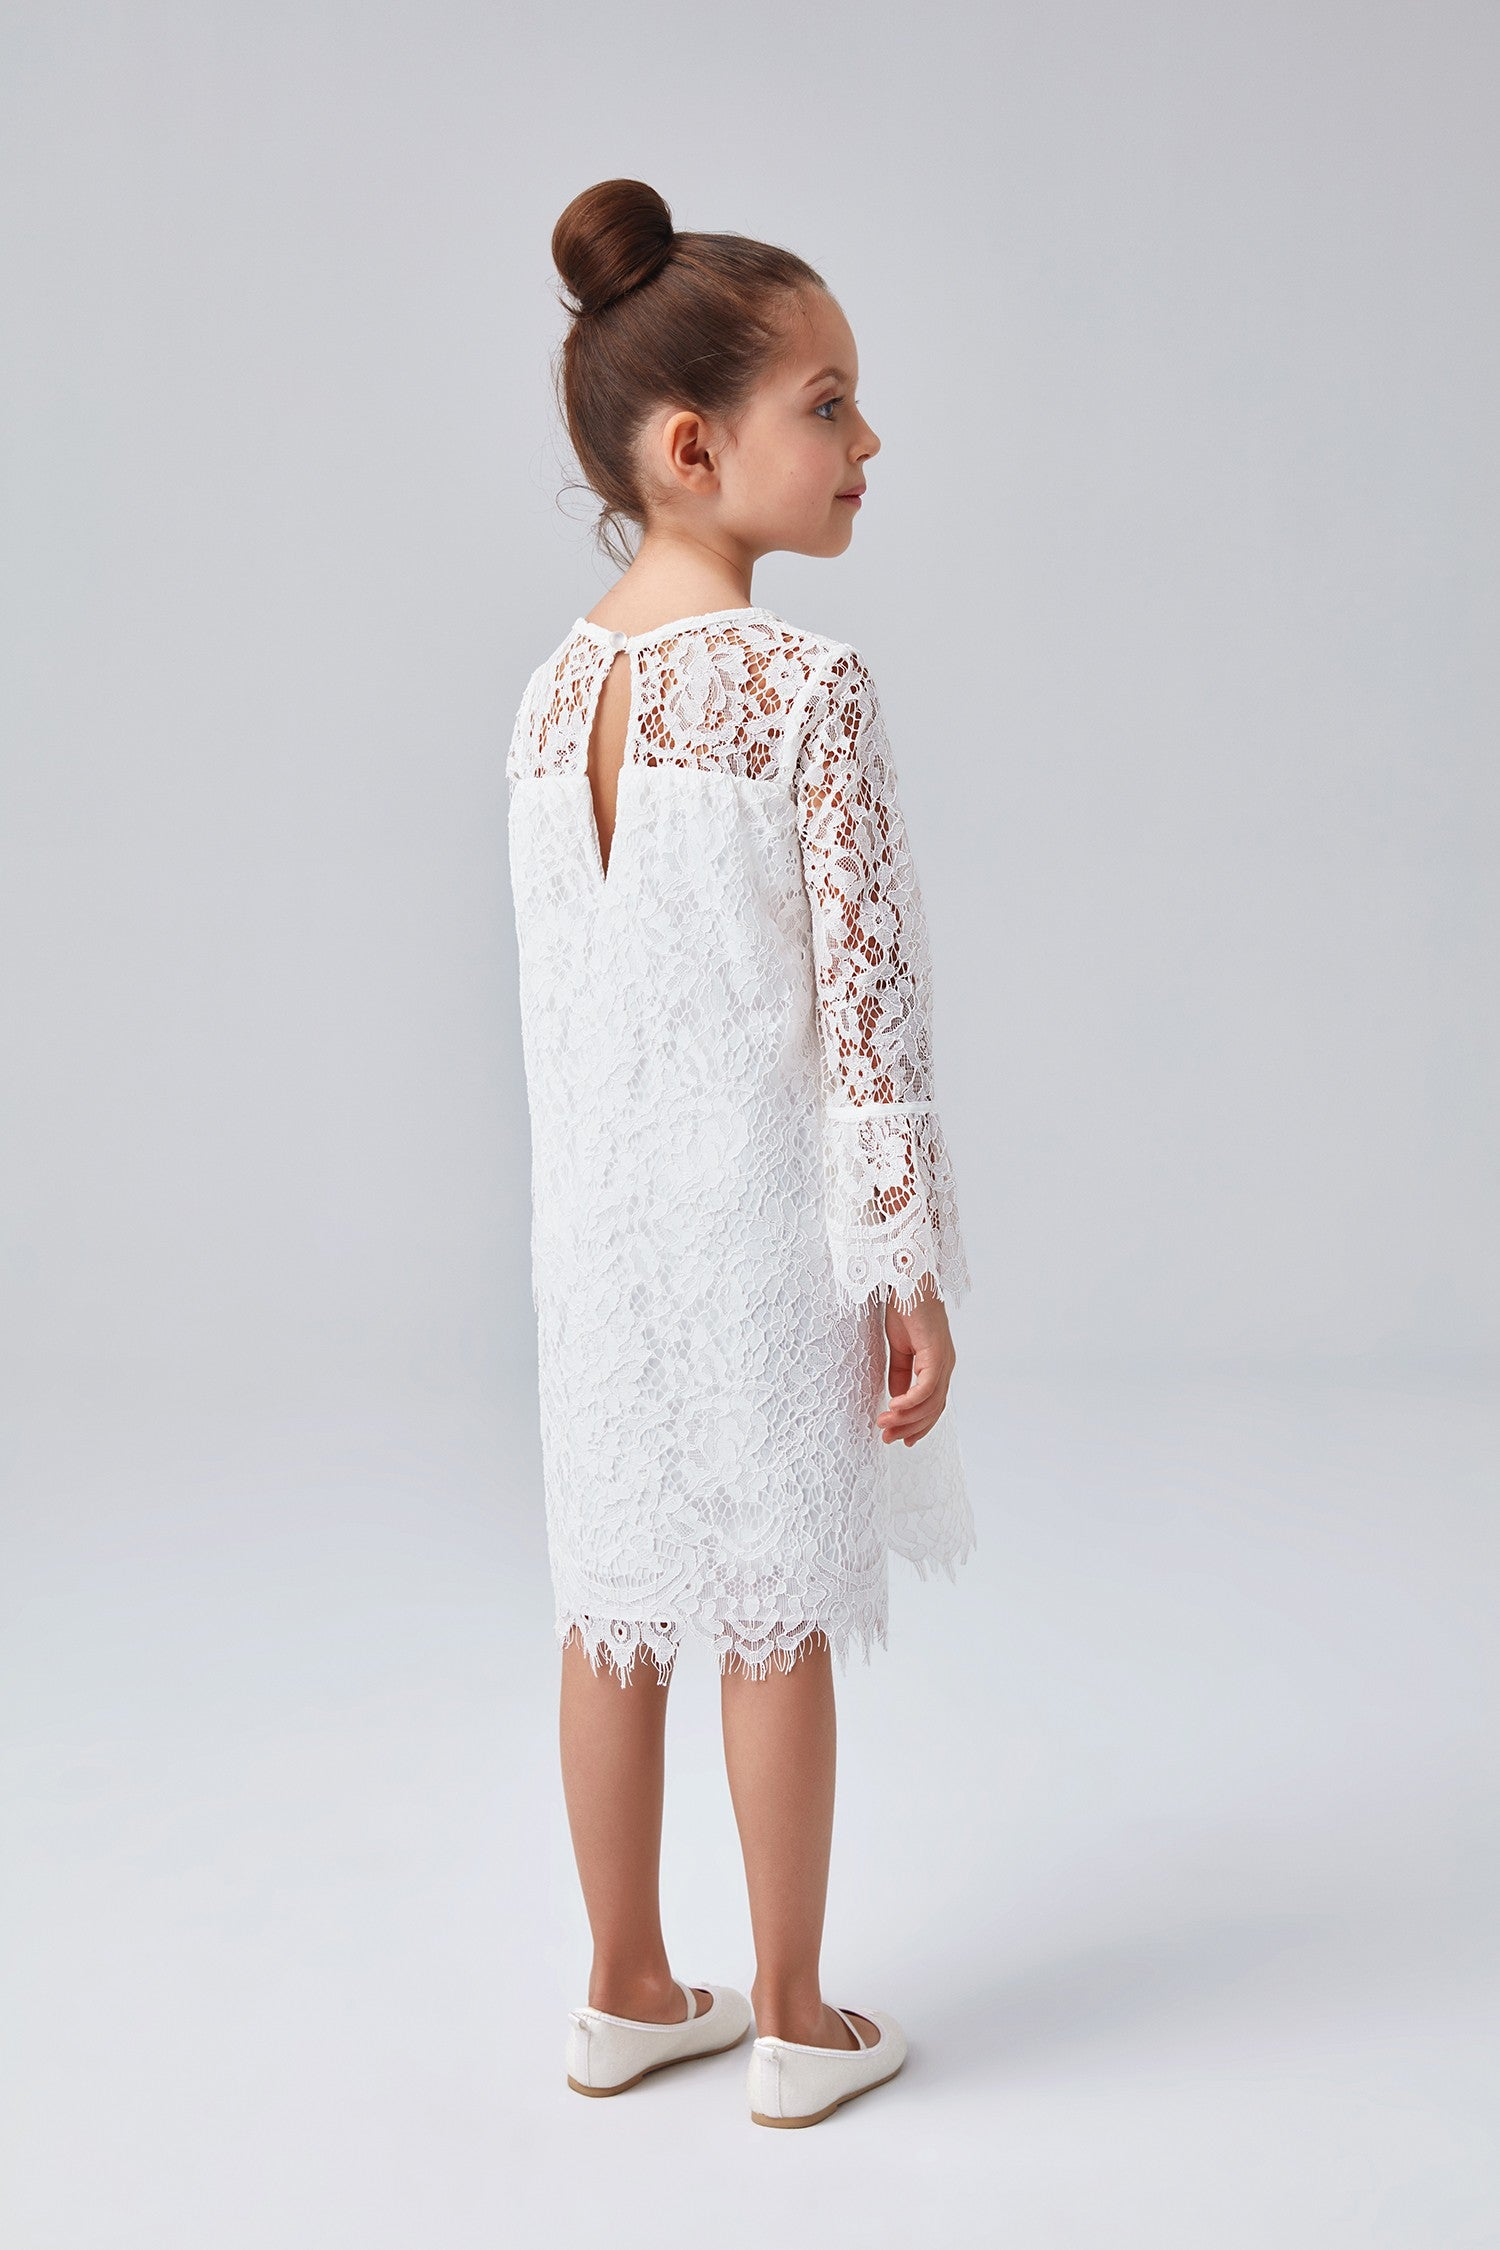 b1b5df8864 Short Lace Flower Girl Dress with Illusion Sleeves-OP239